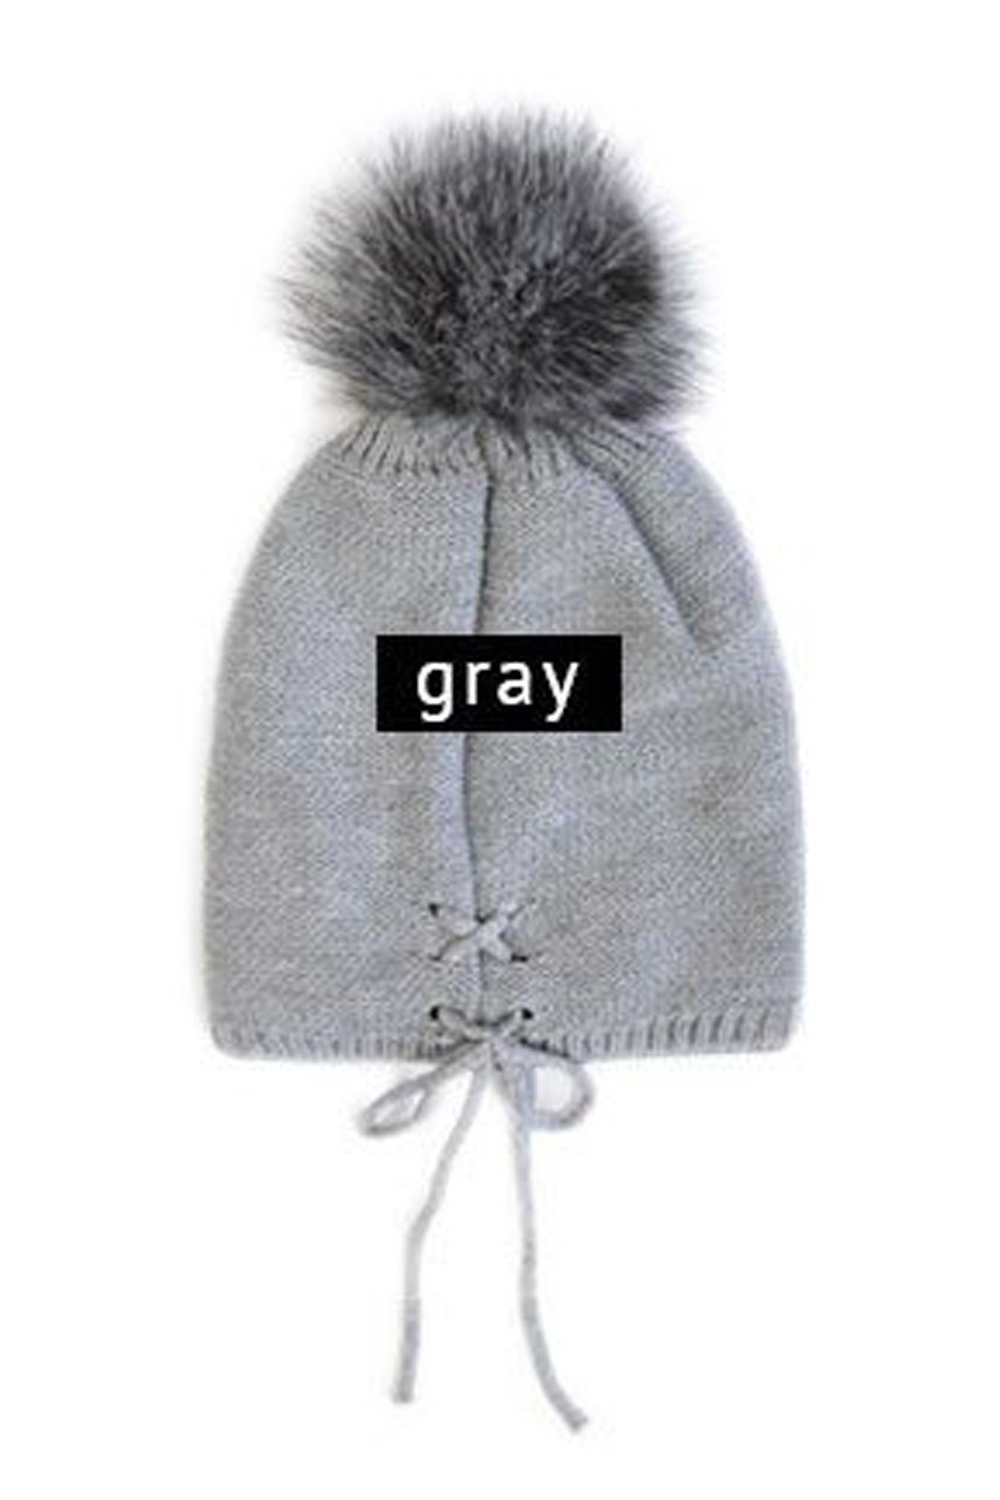 Womens Knitted Top Pom Pom Laced Up Winter Beanie Hat SBH-1631 (Grey)